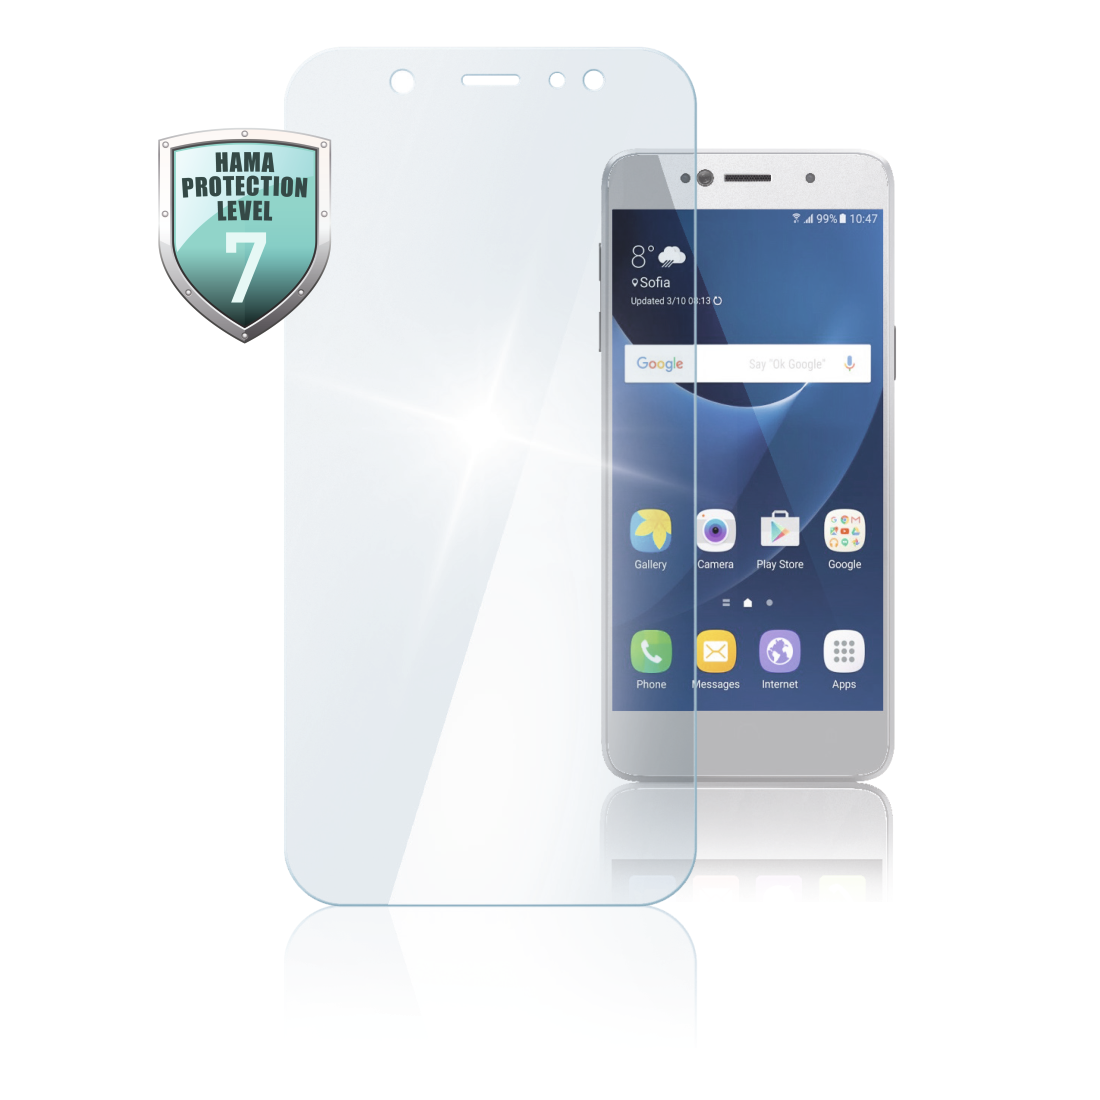 abx High-Res Image - Hama, Verre de protection pour Samsung Galaxy A30s/A50